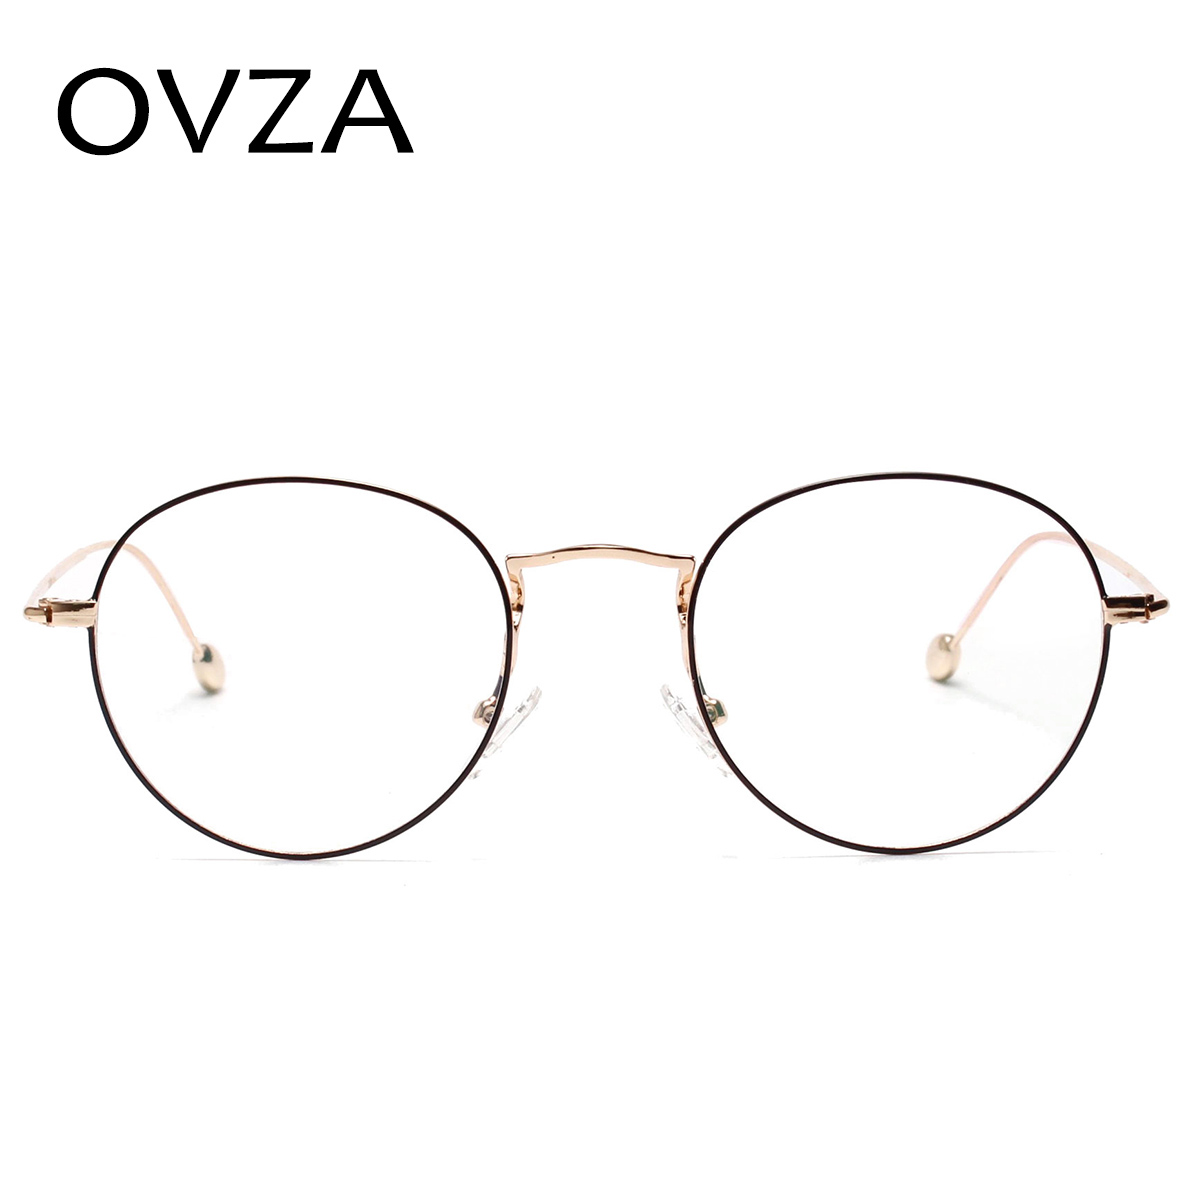 1278c7335b9 OVZA Vintage Oval Glasses Frames Women Fashion Metal Optical Frame Mens  Retro Eyeglasses Ultralight Transparent L S1093-in Eyewear Frames from  Men s ...